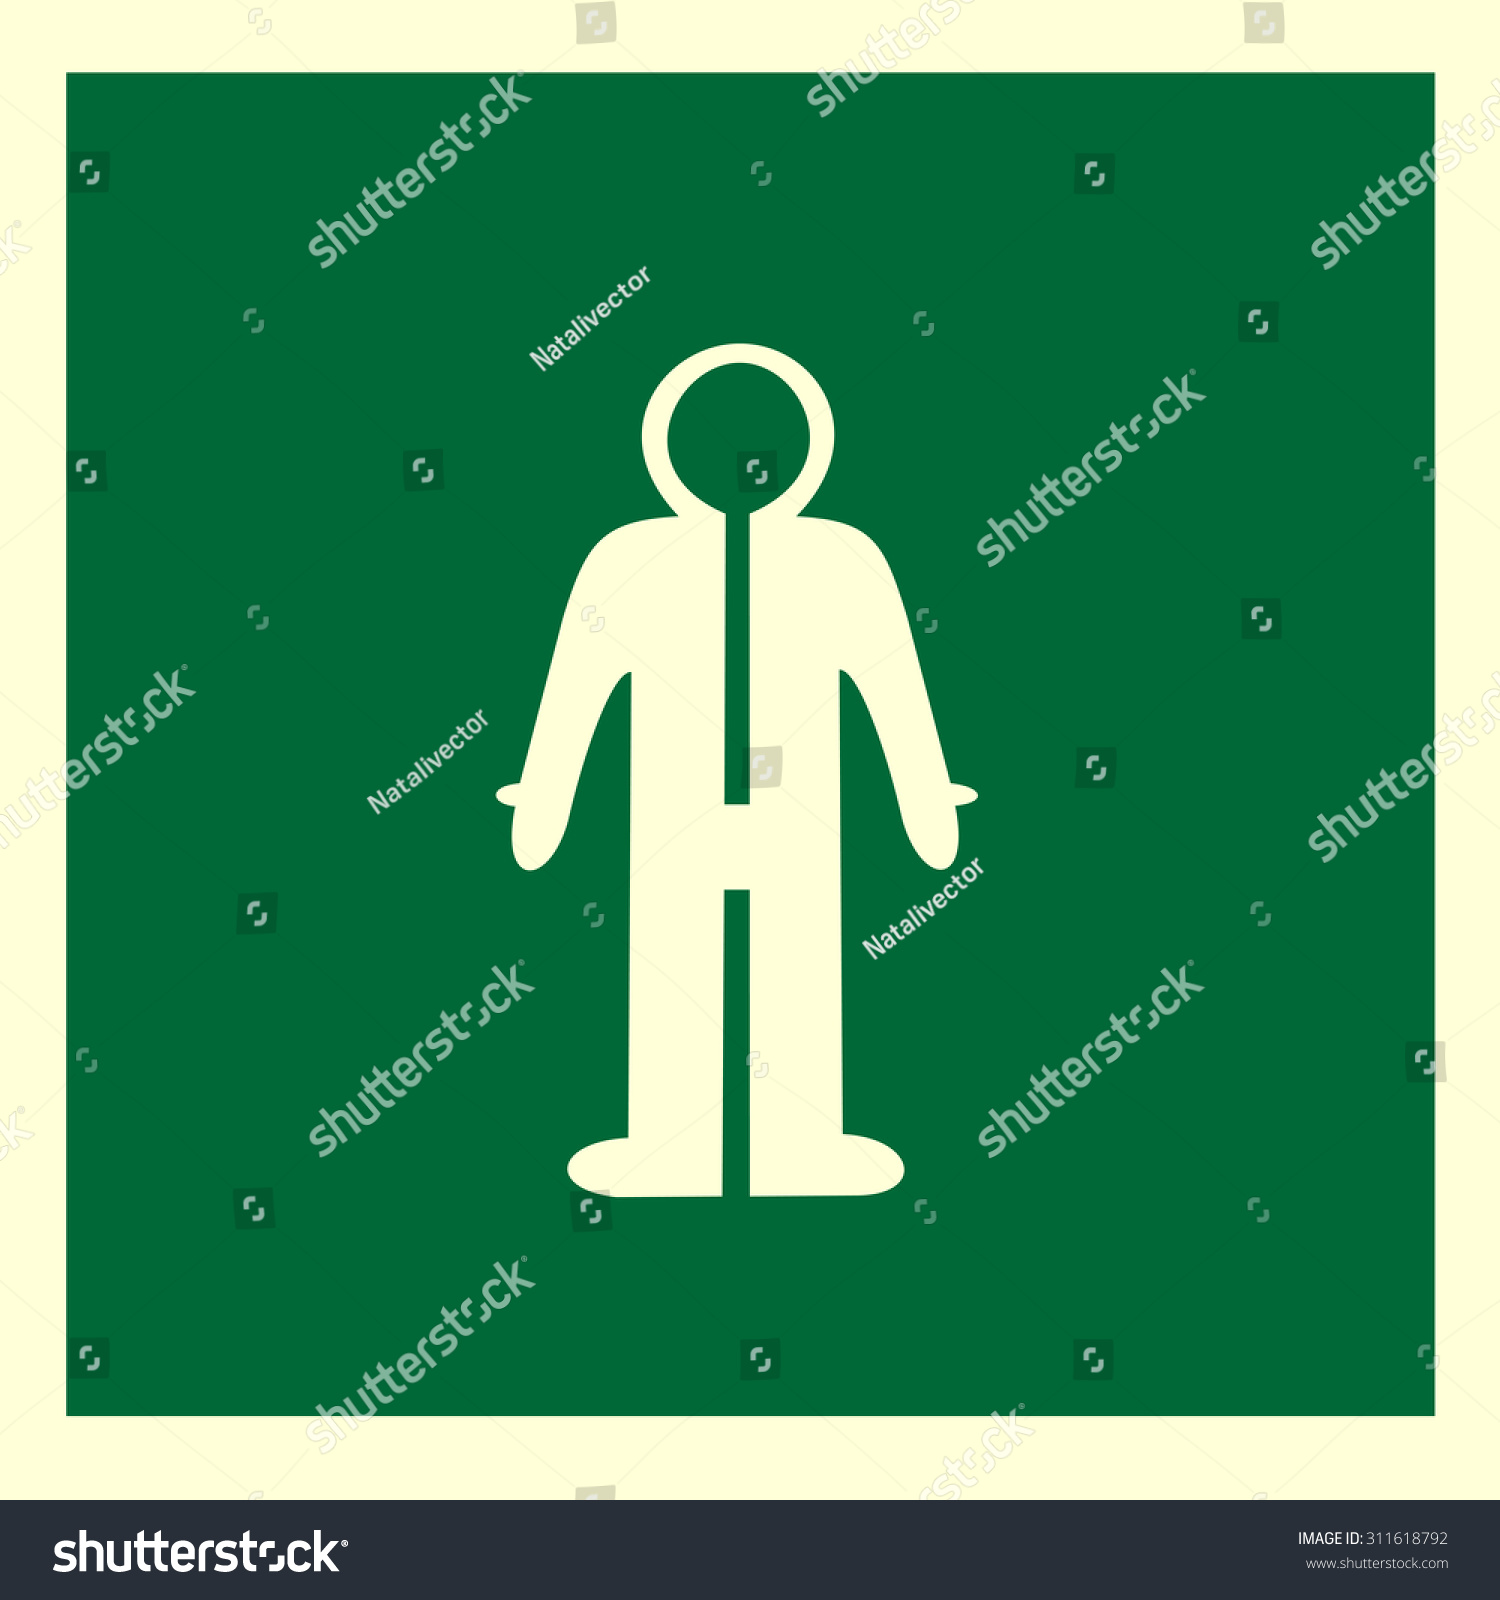 Vector suit dry suit suitable index stock vector 311618792 vector suit dry suit suitable for index information or sign in factories plants biocorpaavc Gallery